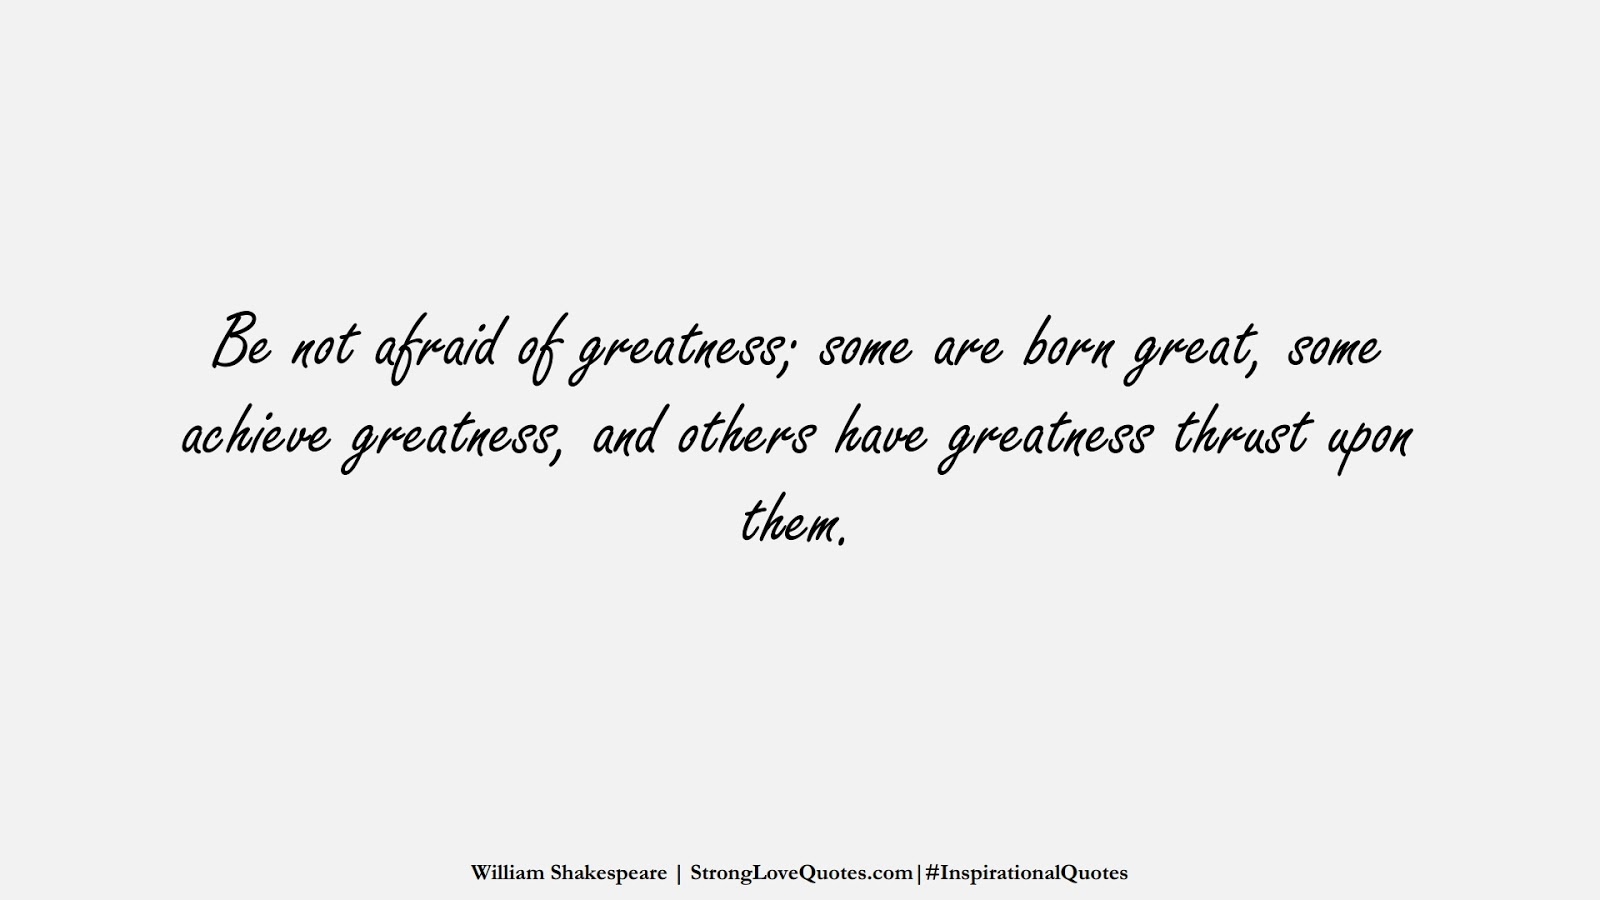 Be not afraid of greatness; some are born great, some achieve greatness, and others have greatness thrust upon them. (William Shakespeare);  #InspirationalQuotes